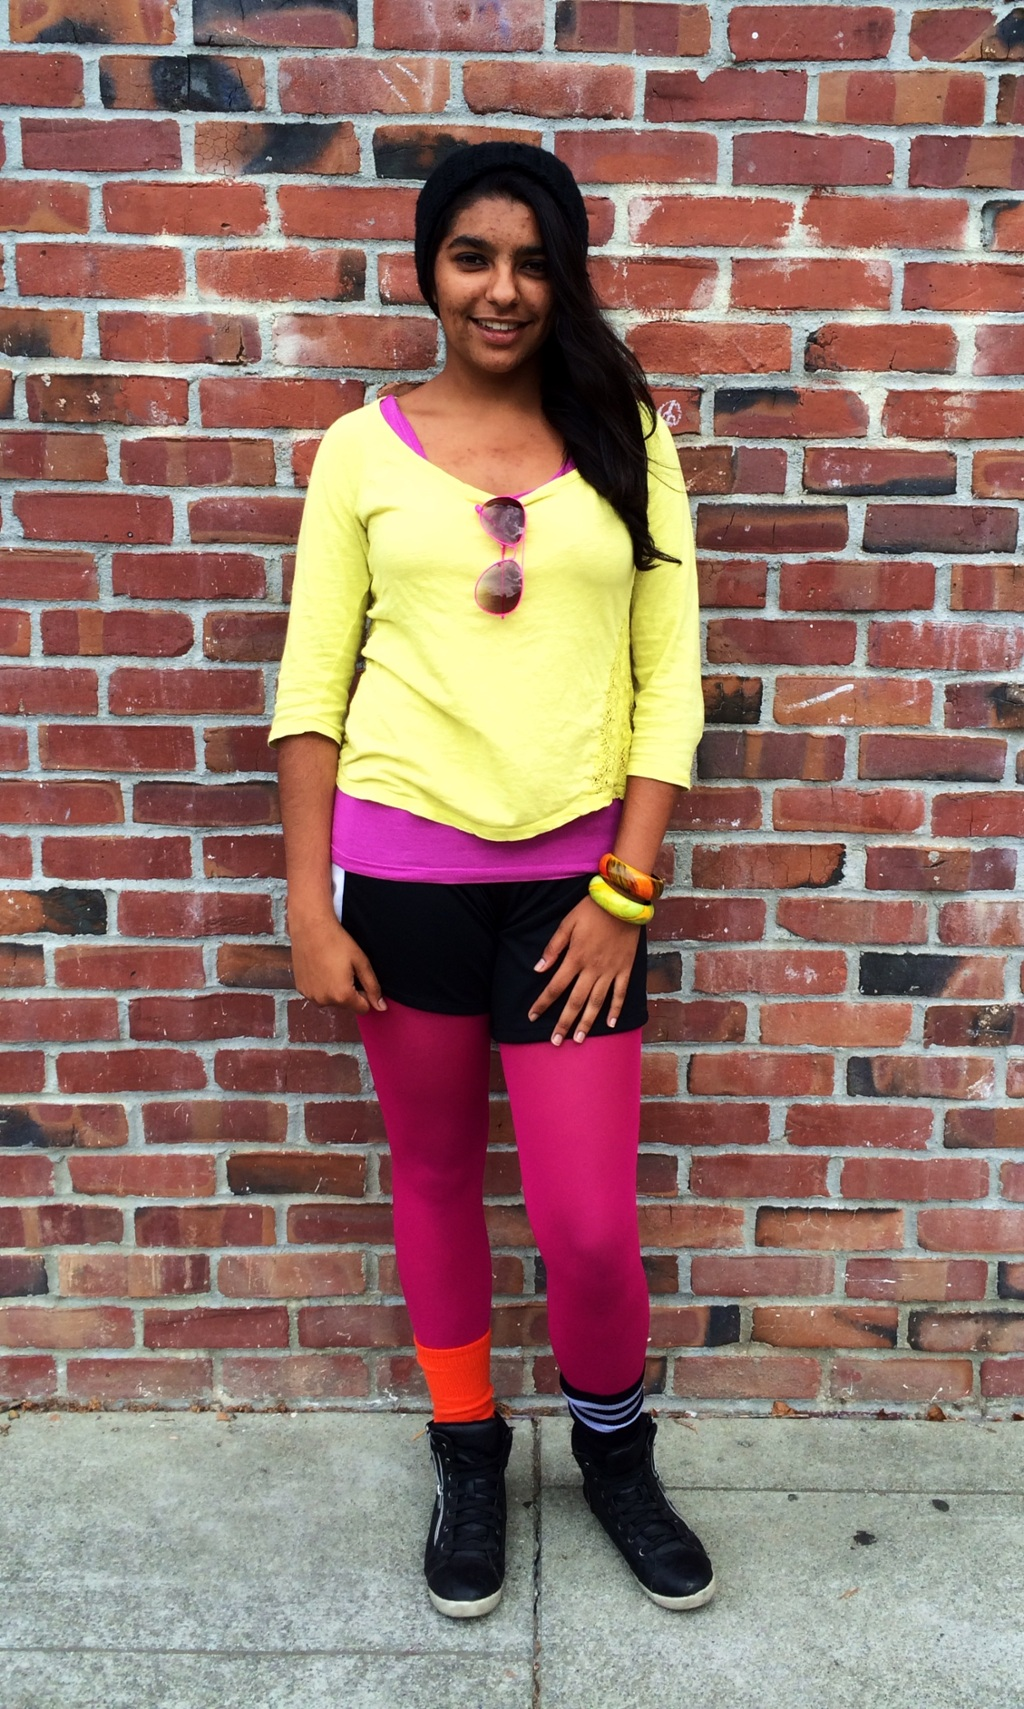 Fashion Friday: Creative mismatch